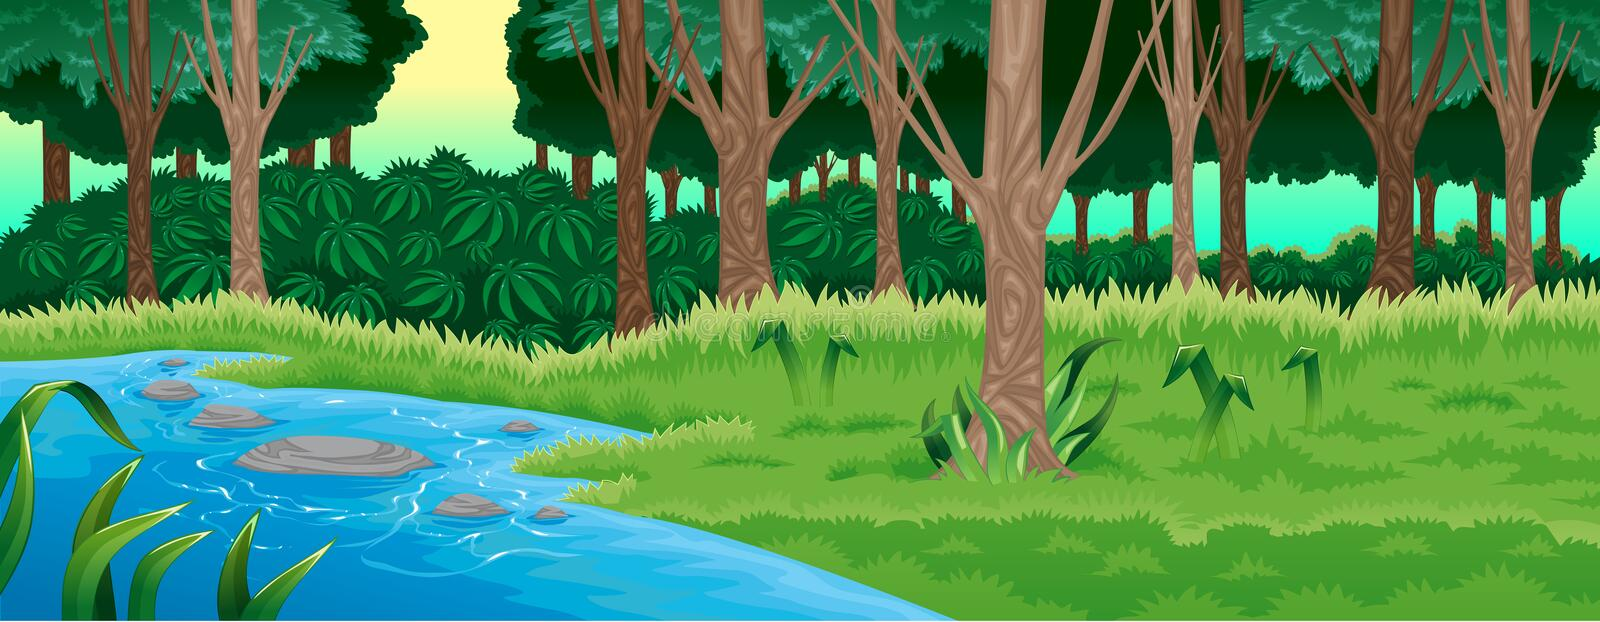 Green forest. royalty free illustration